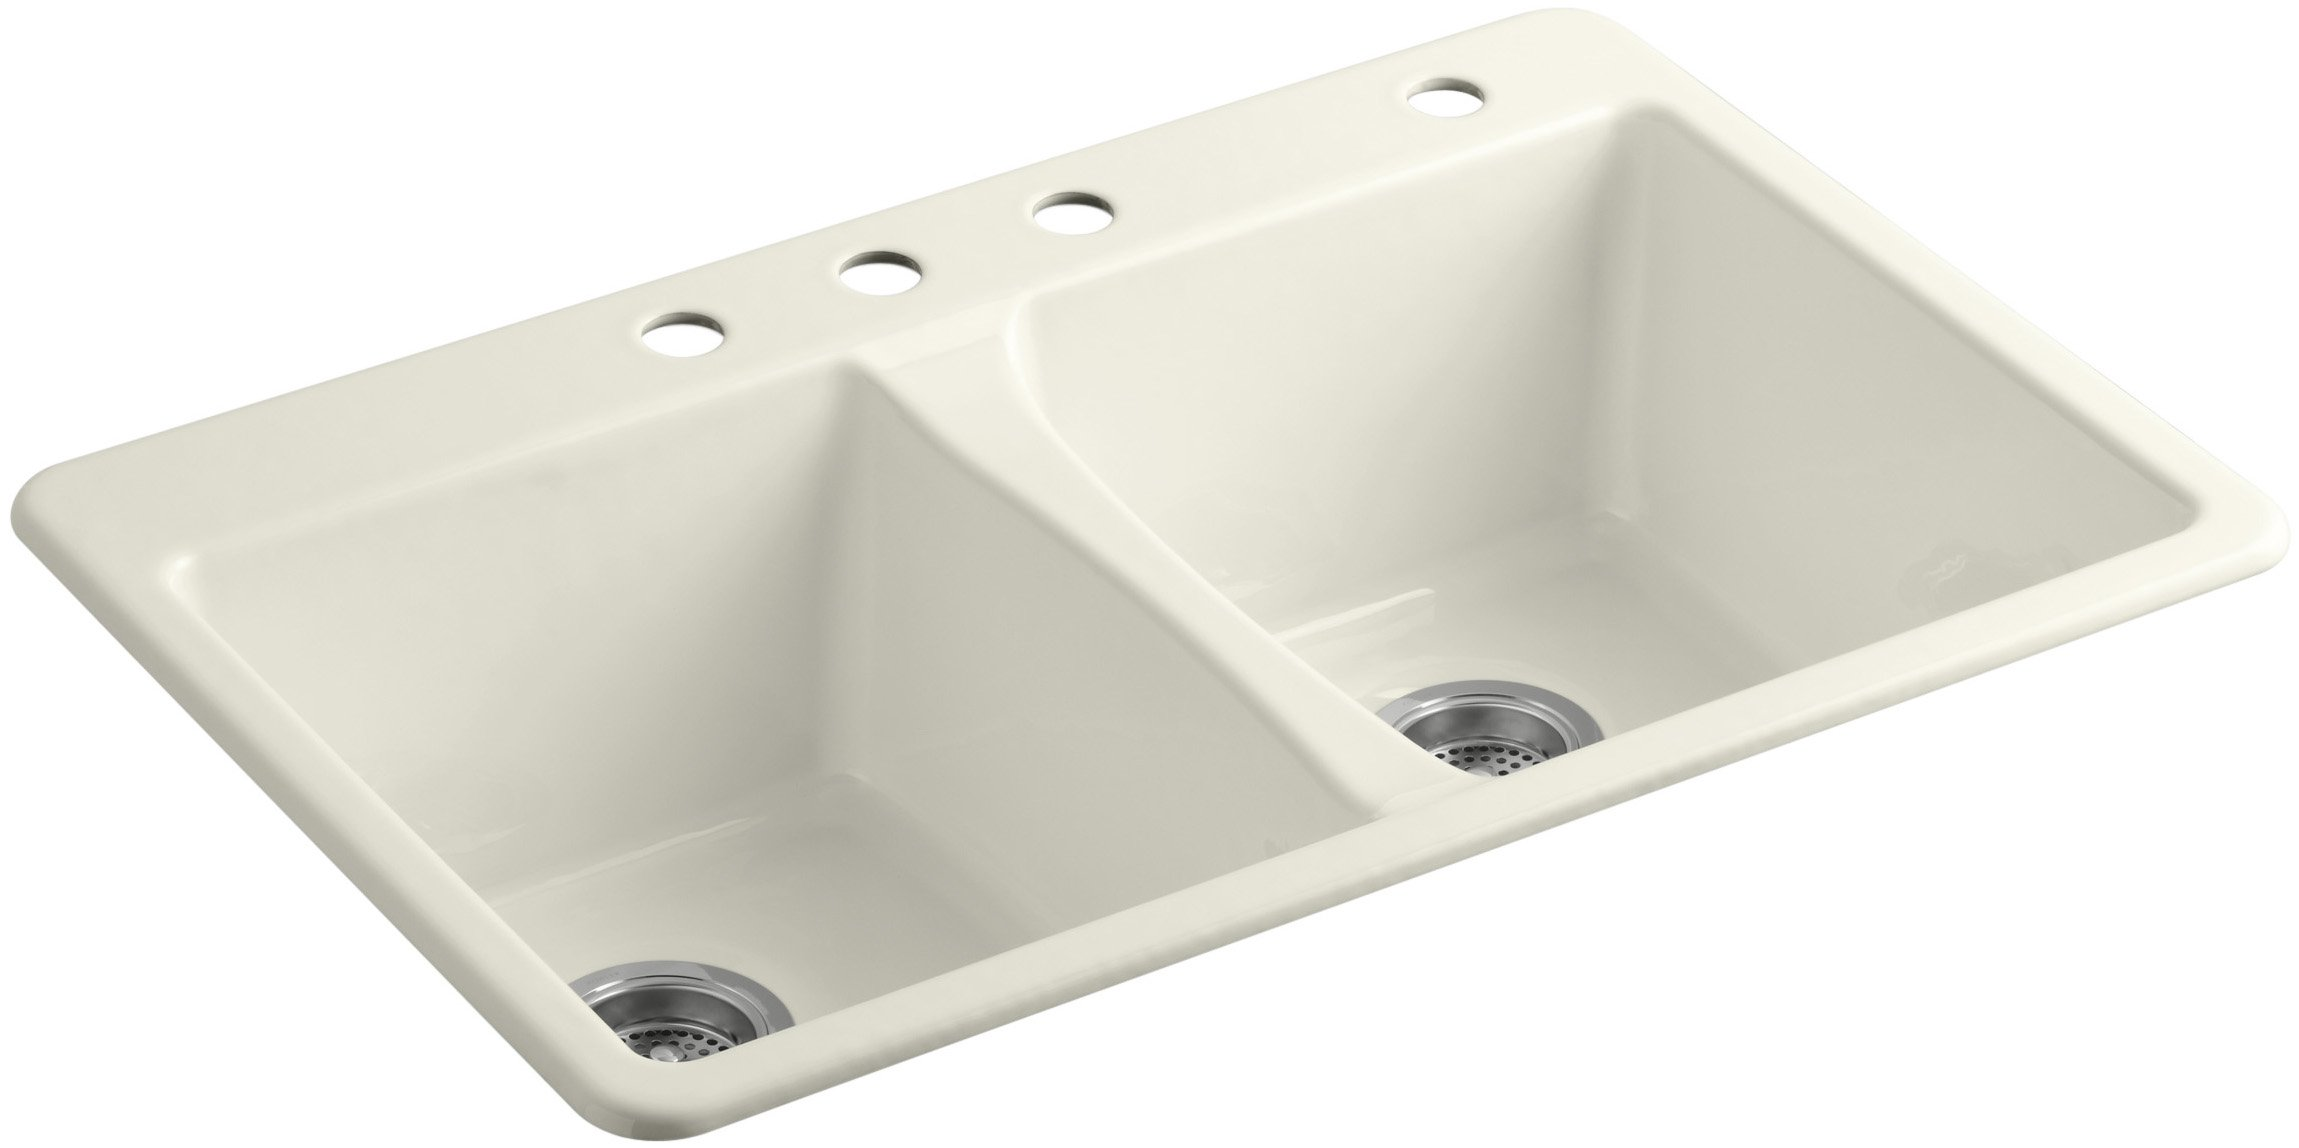 KOHLER K-5873-4-96 Deerfield Double Bowl Top-Mount Kitchen Sink with Four Hole Drillings, Biscuit